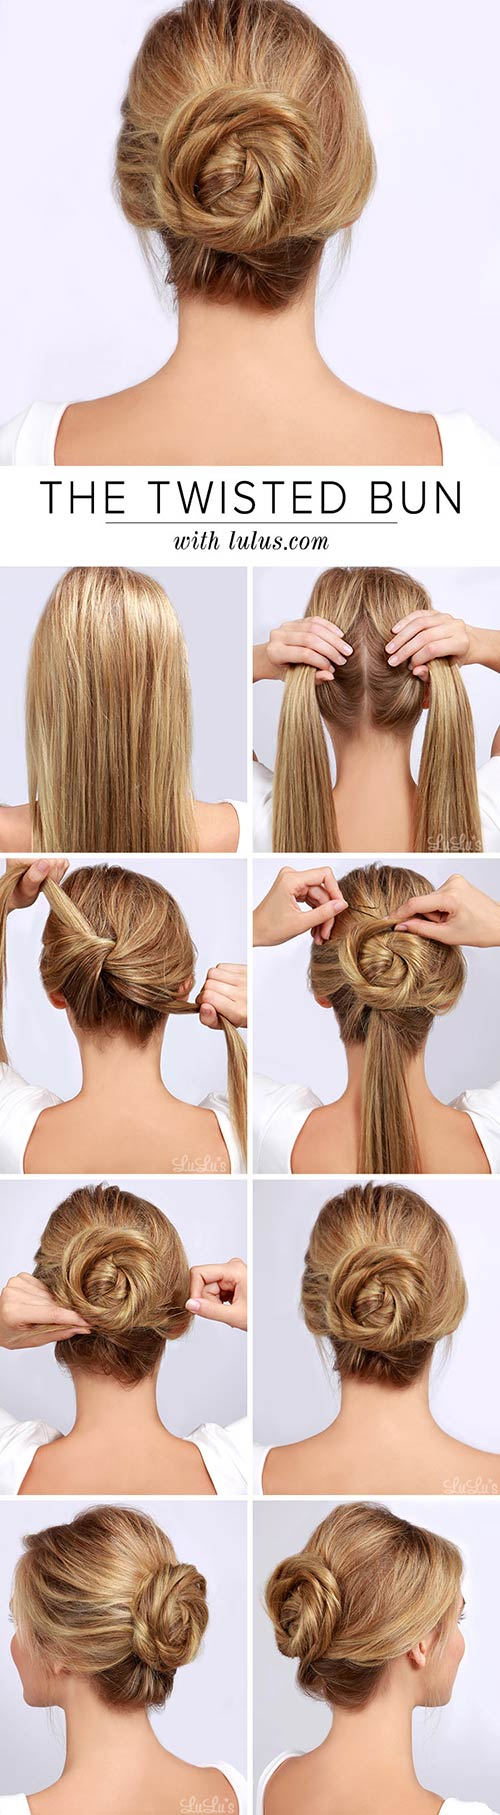 Twisted-Bun Awesome Hairstyles For Girls With Long Hair